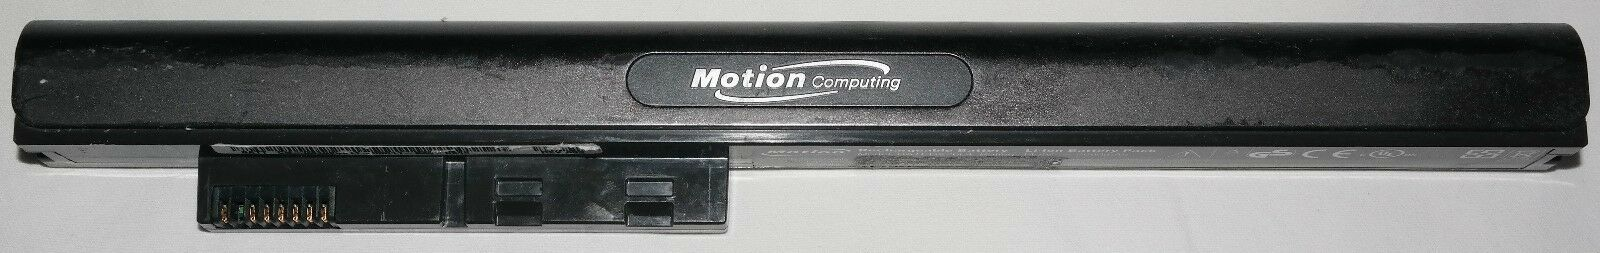 Motion Computing Genuine LE1600 LE1700 (BATEDX20L4) Battery